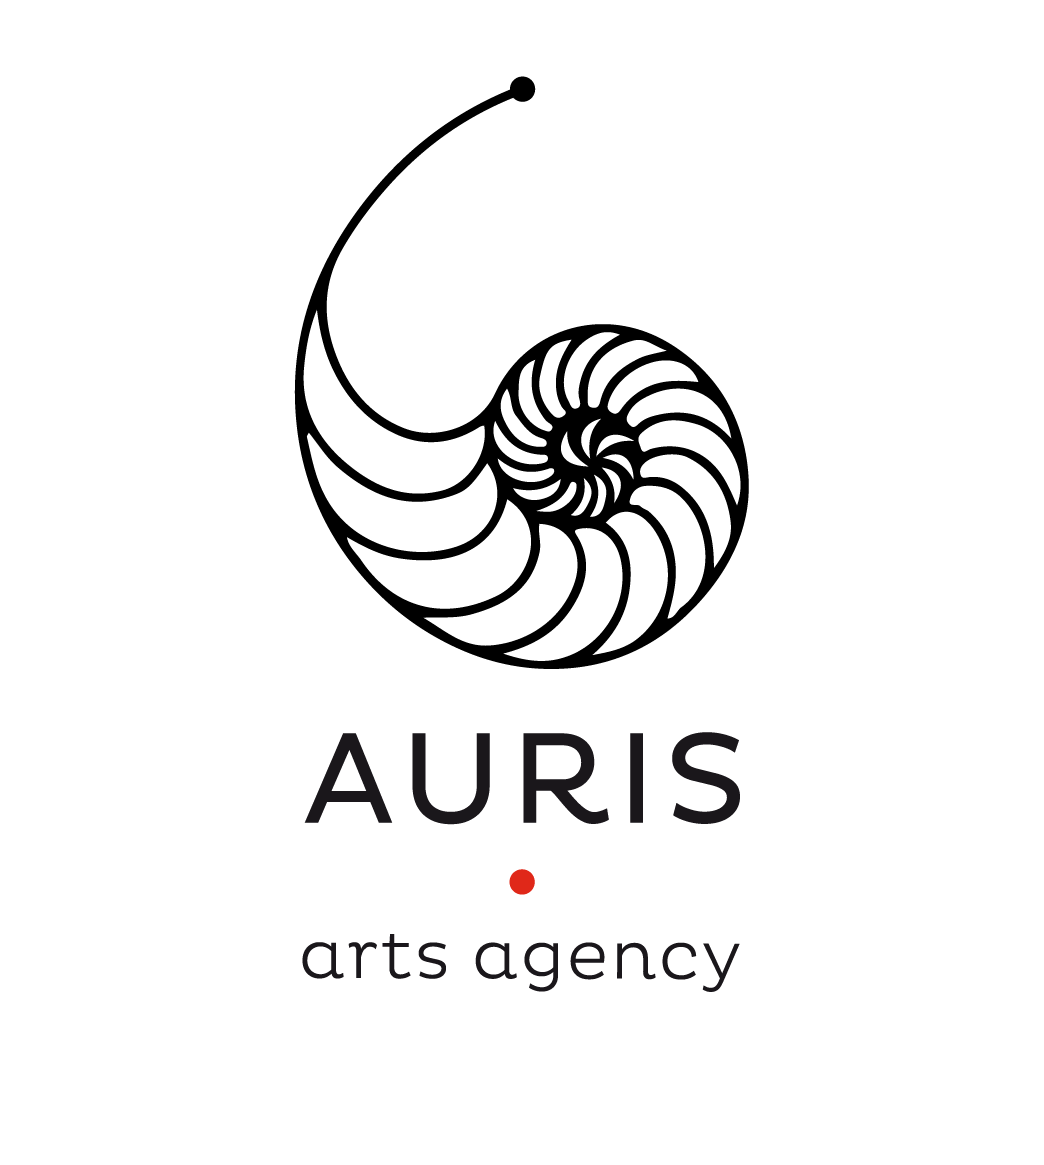 Auris Arts Agency